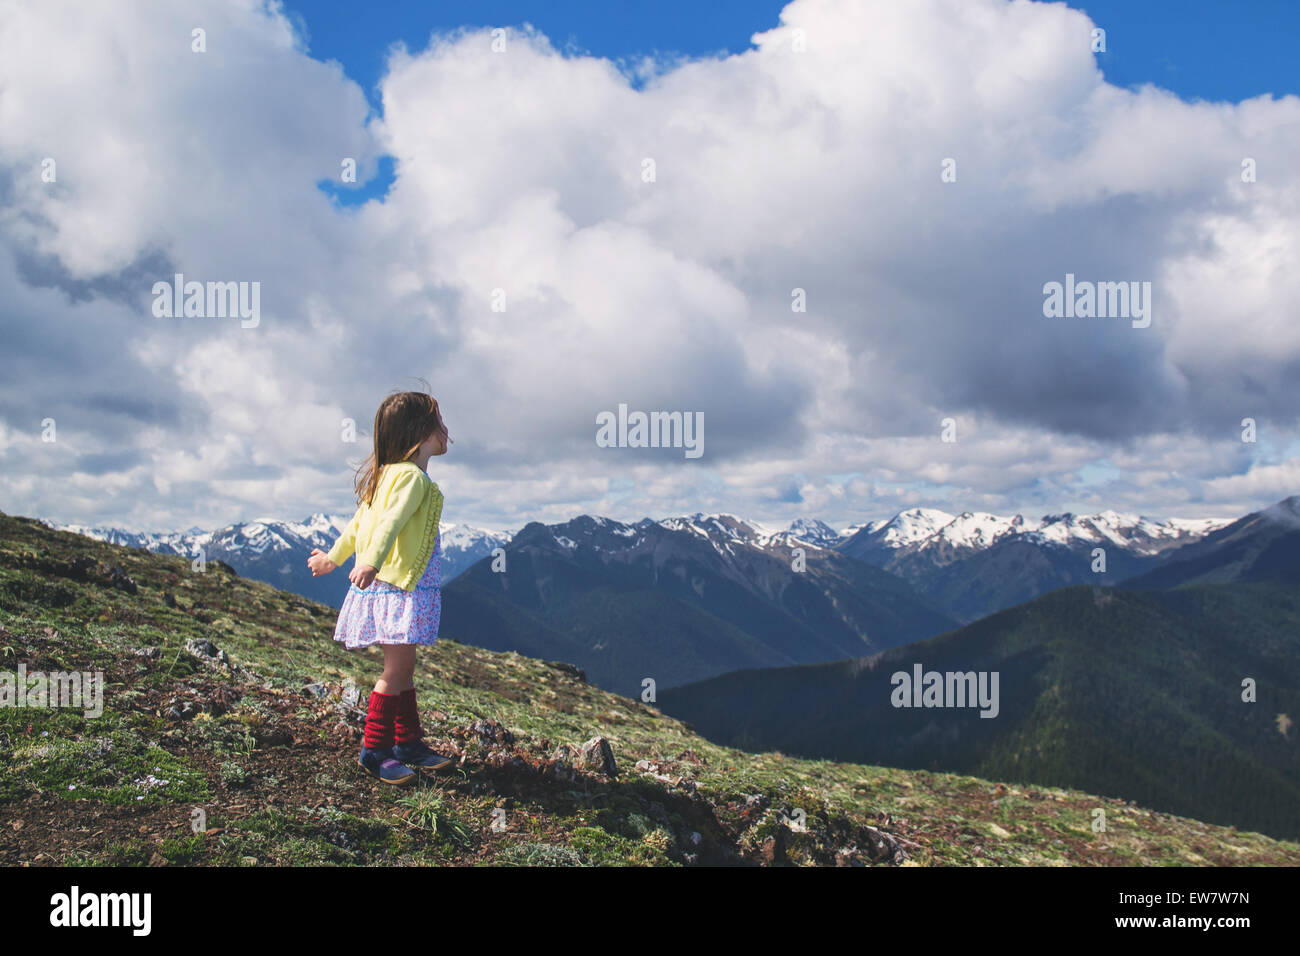 Girls standing on top of a mountain shouting - Stock Image